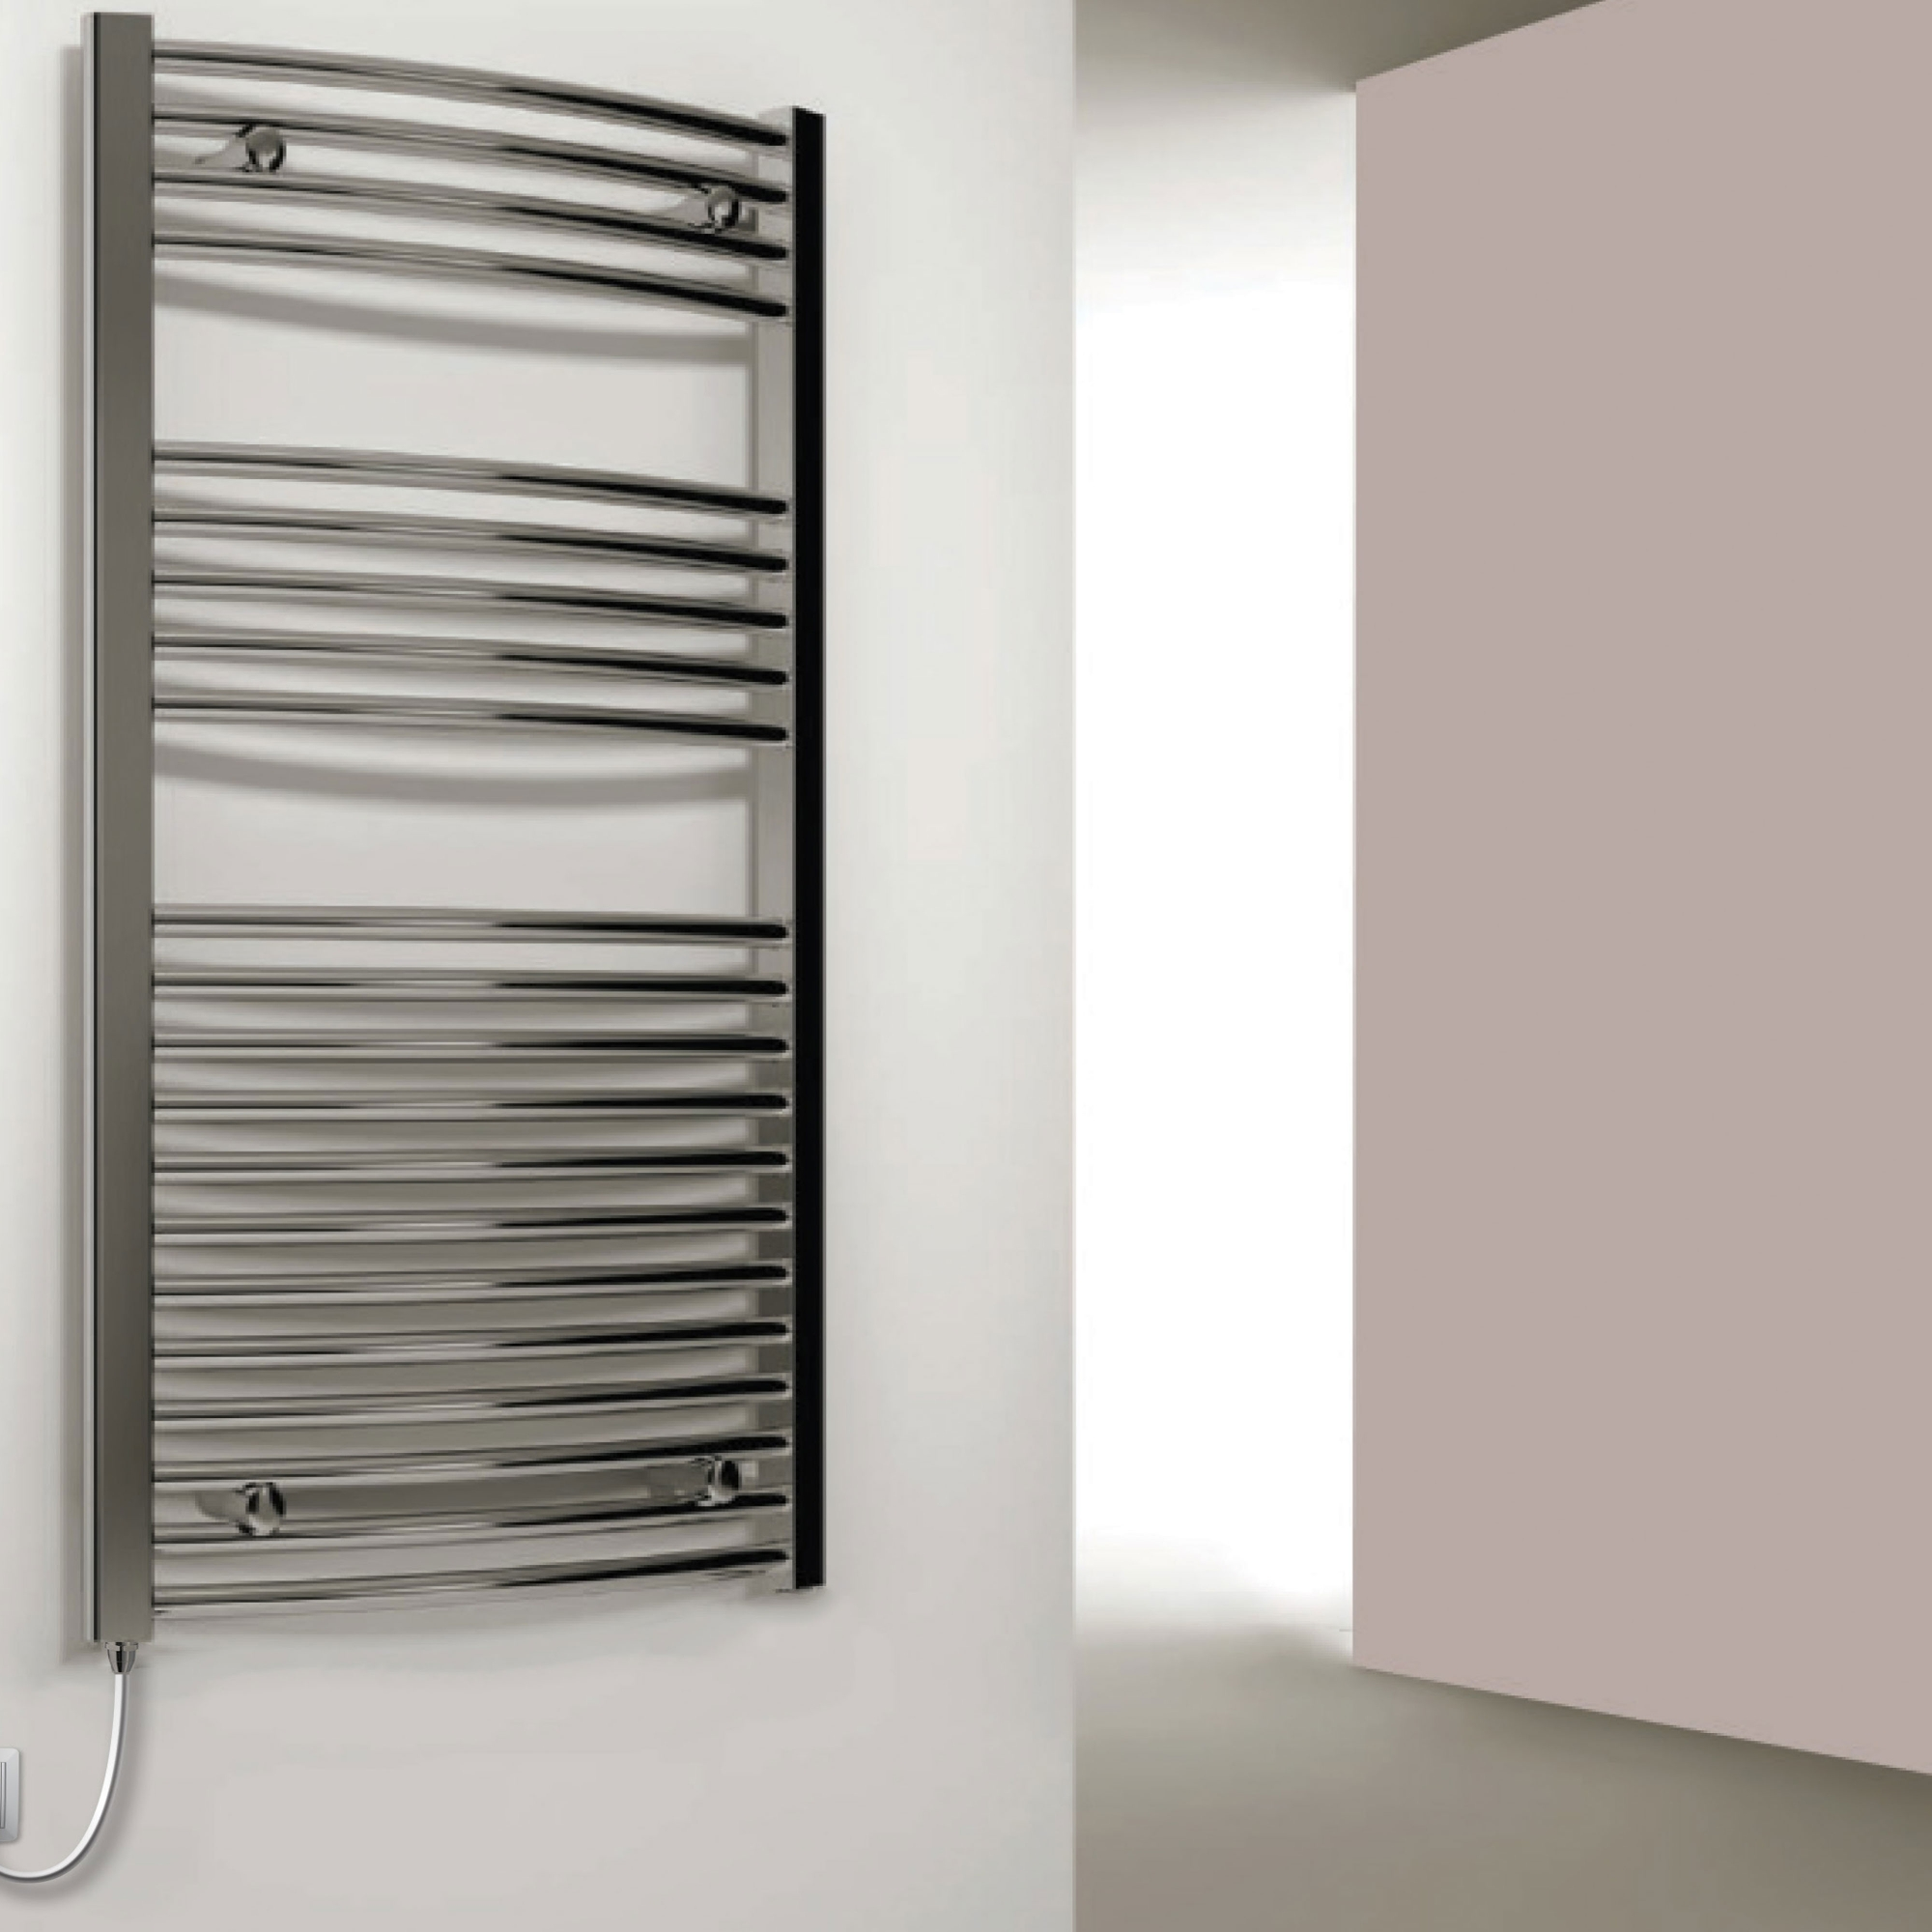 Reina Capo Curved Thermostatic Electric Heated Towel Rail 1600mm H x 500mm W Chrome-0